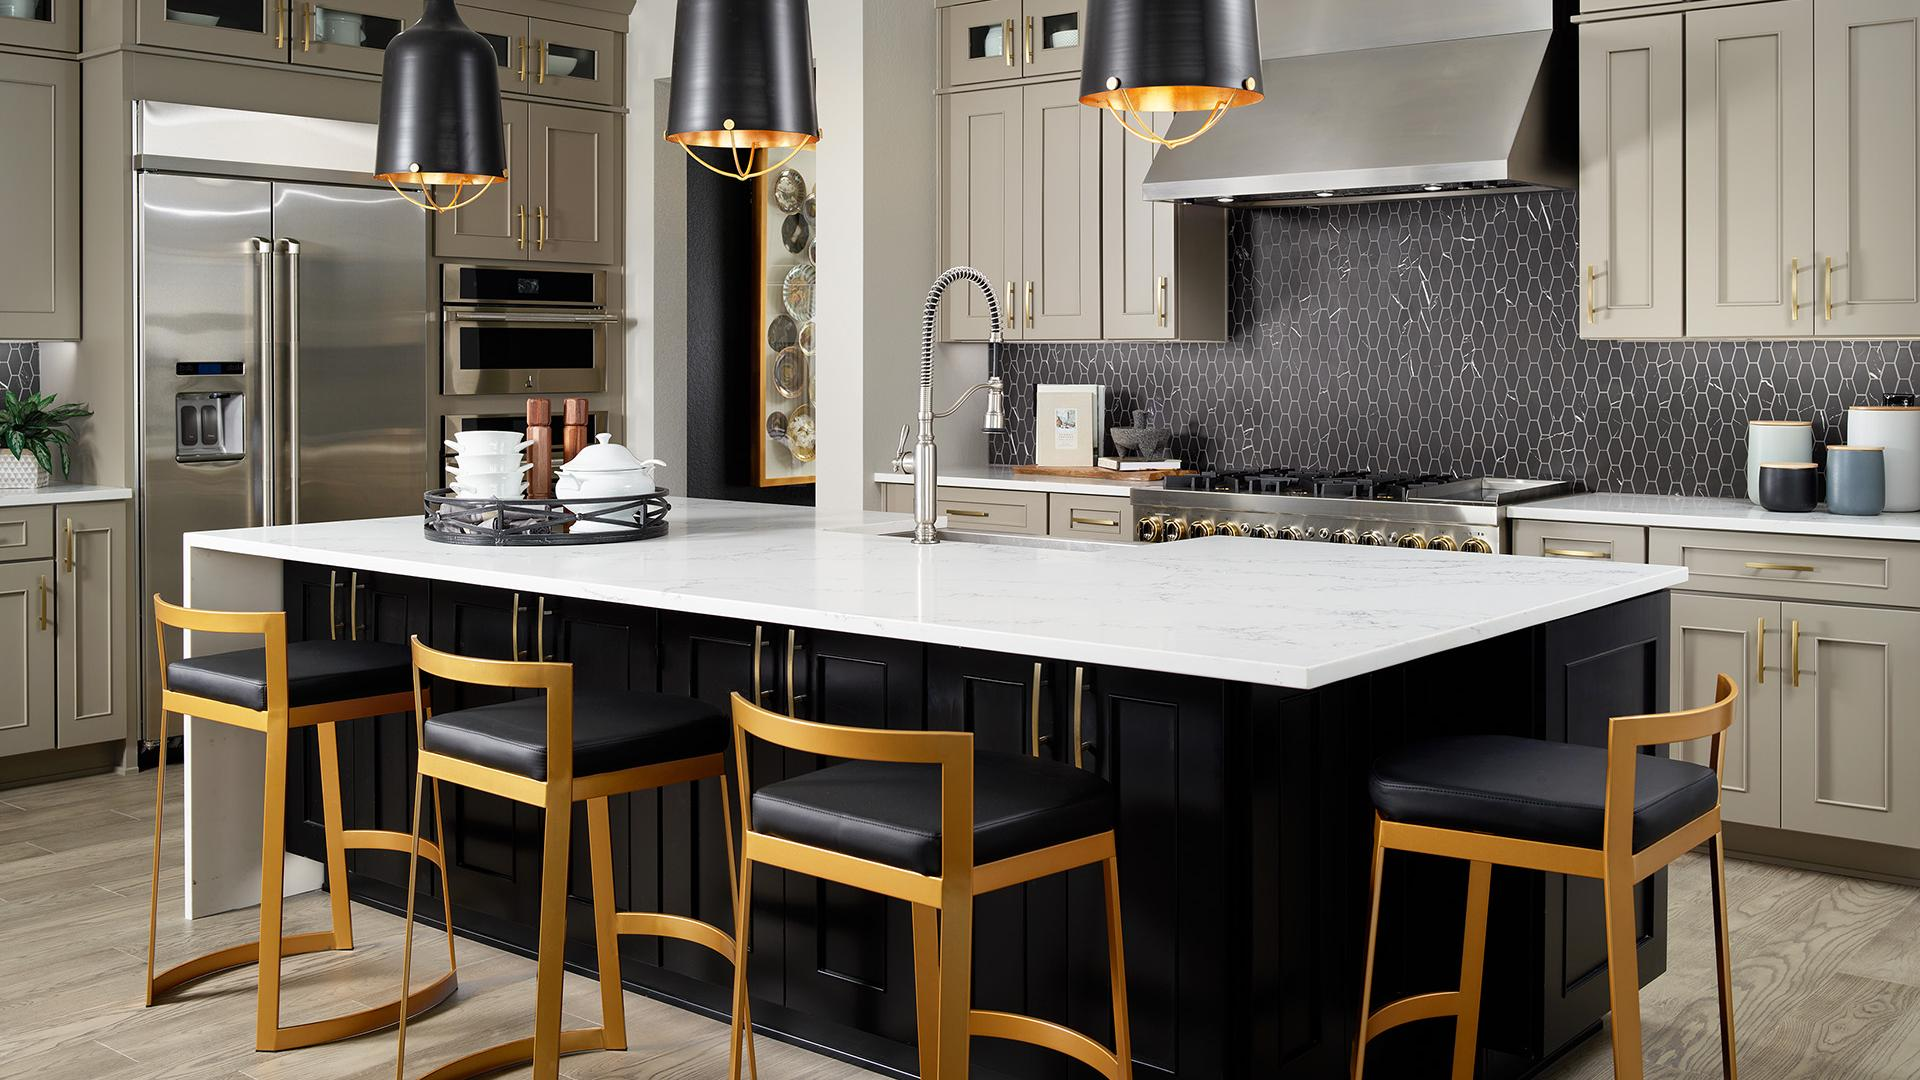 Shavano chef's kitchen with island seating for four